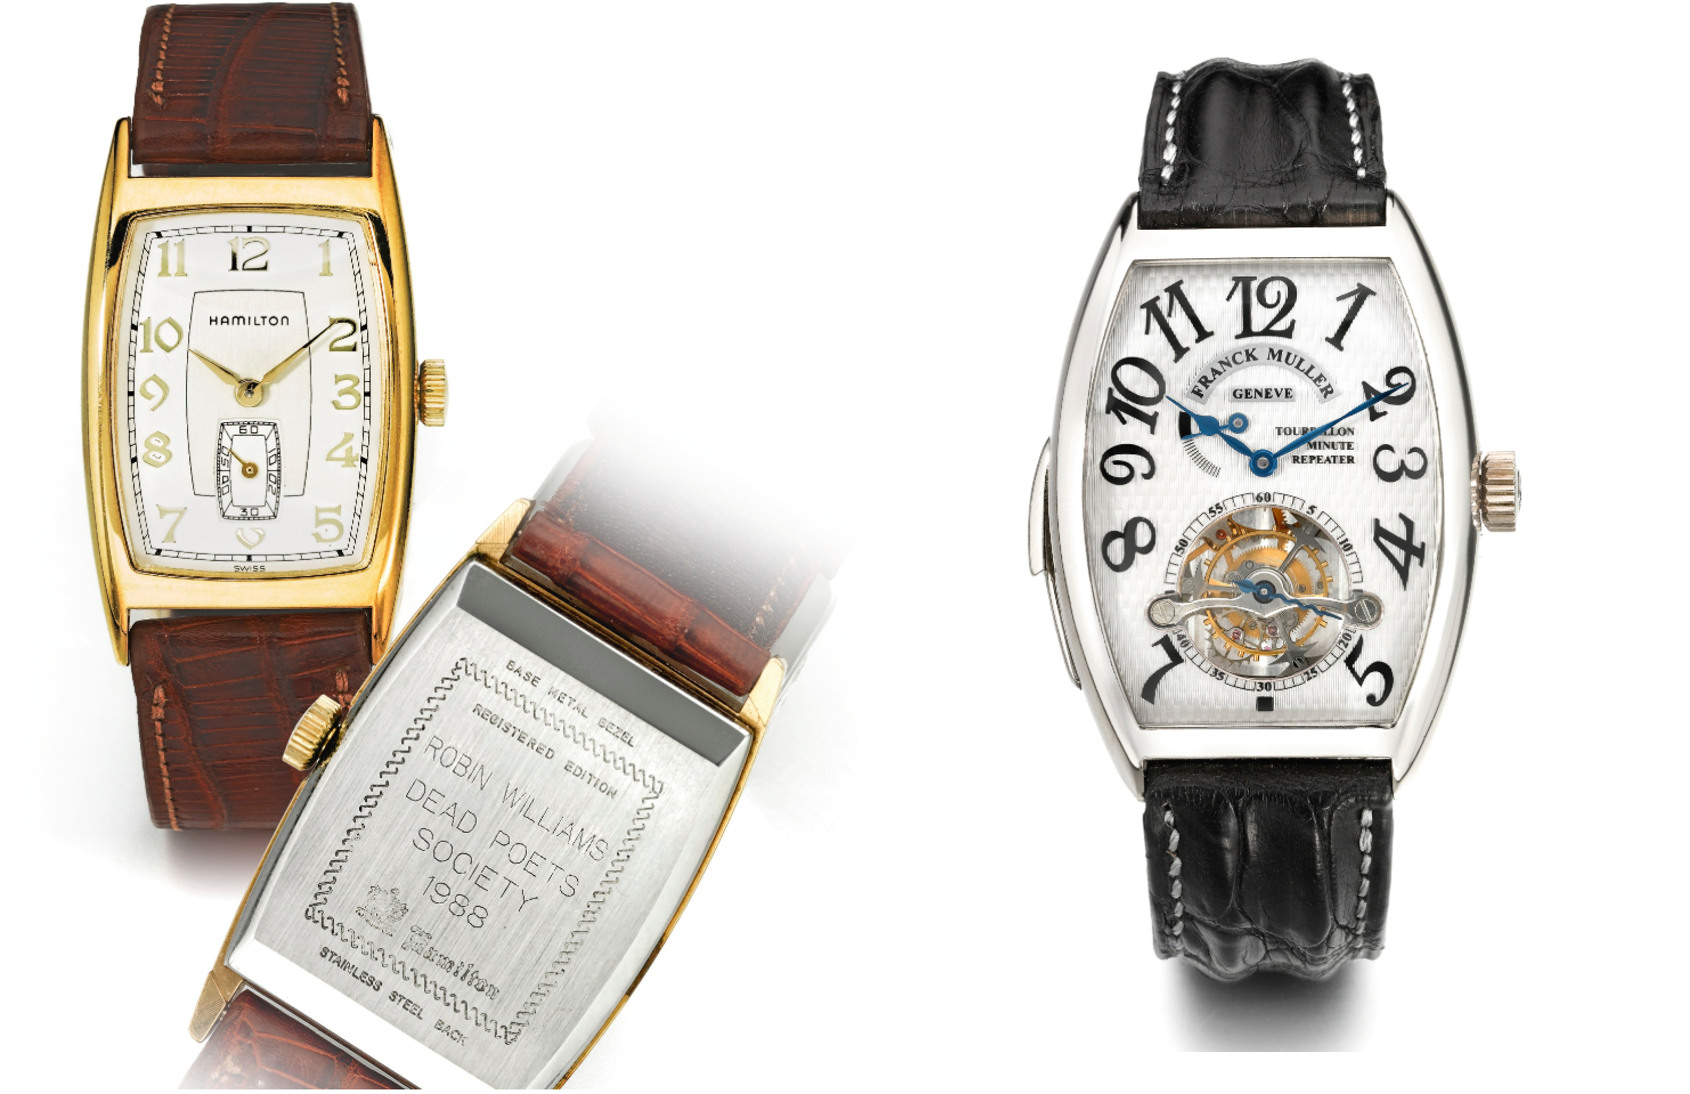 Sothebys Auction Results >> News All Watches Sell At Sotheby S Auction Of Robin